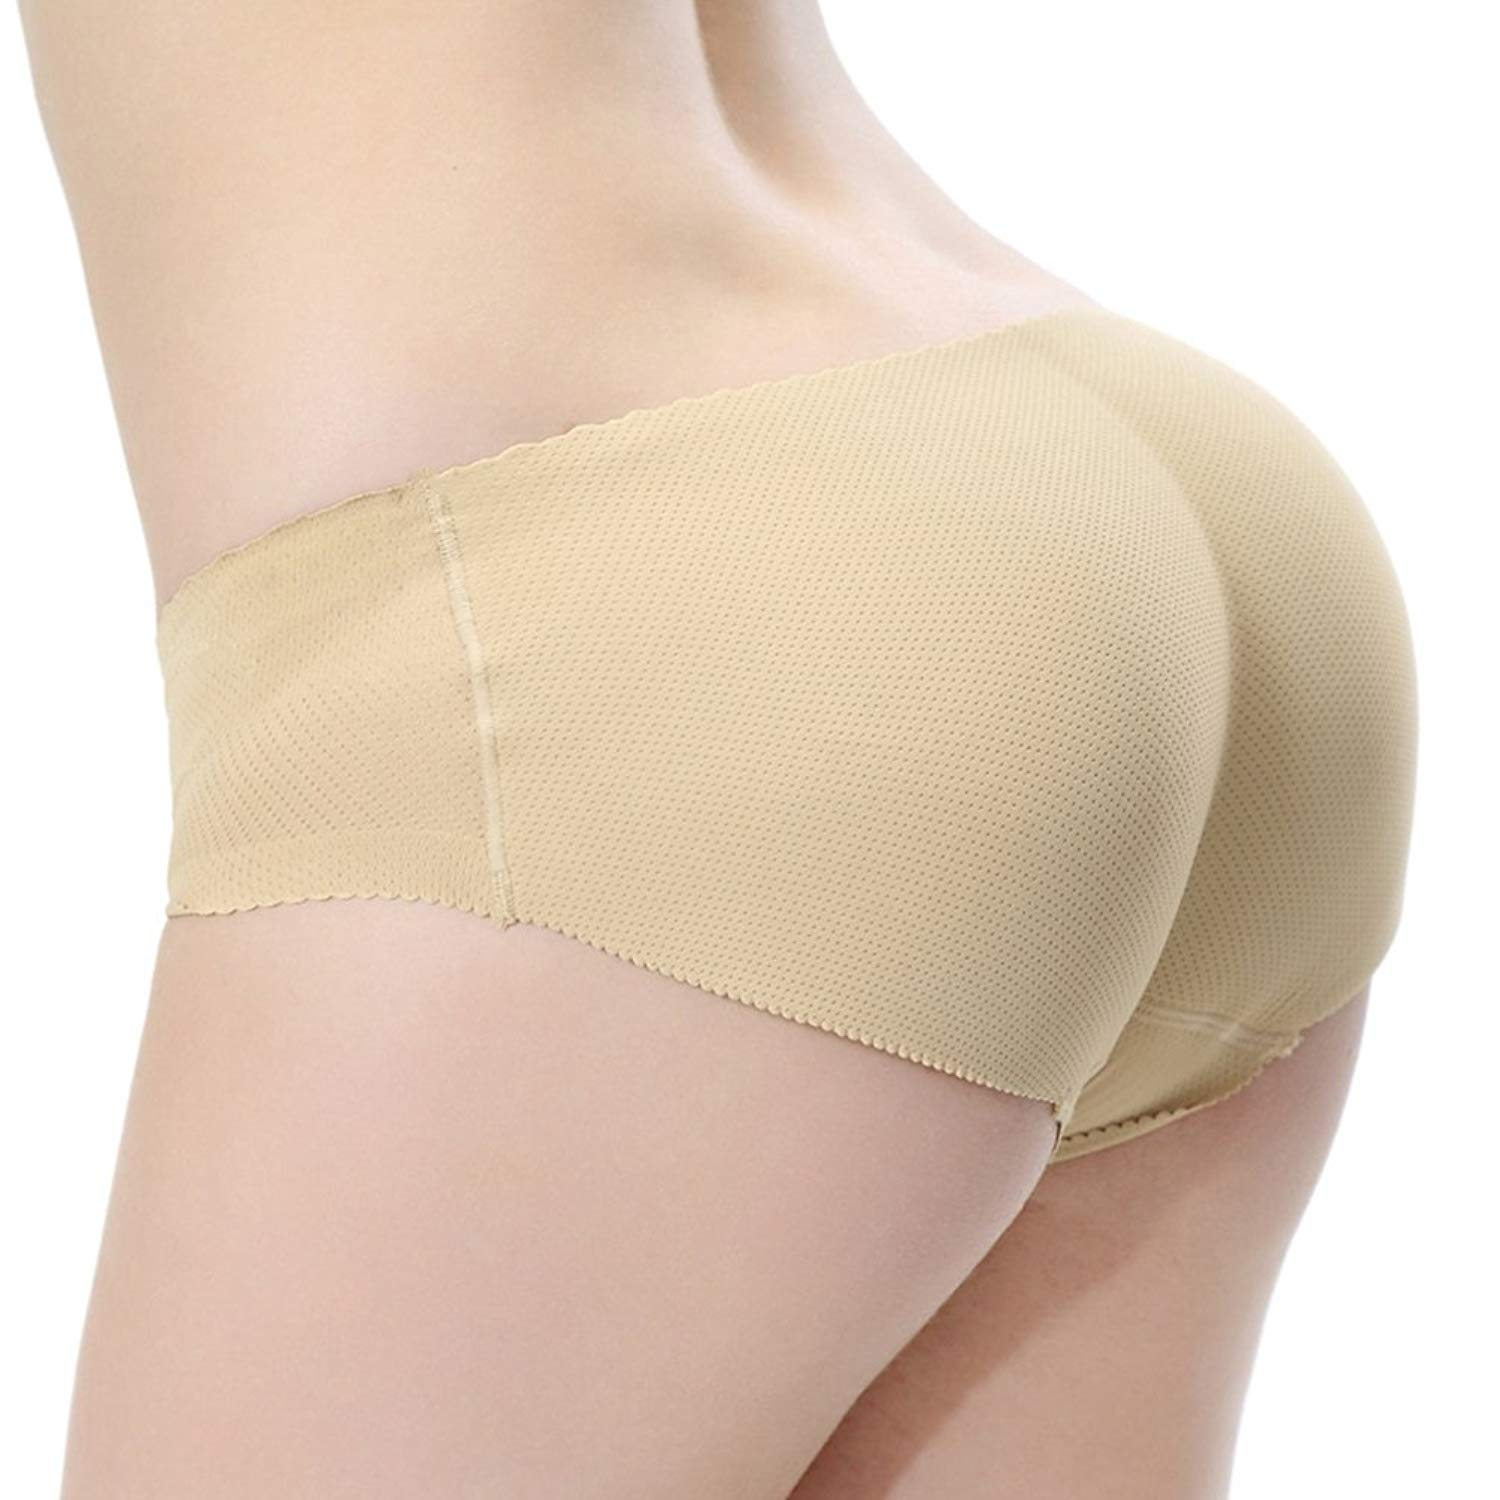 36aa5339229eb Get Quotations · Zarbrina Shapewear Seamless High Waisted Underwear  Breathable Tummy Control Shaping Thong Panties